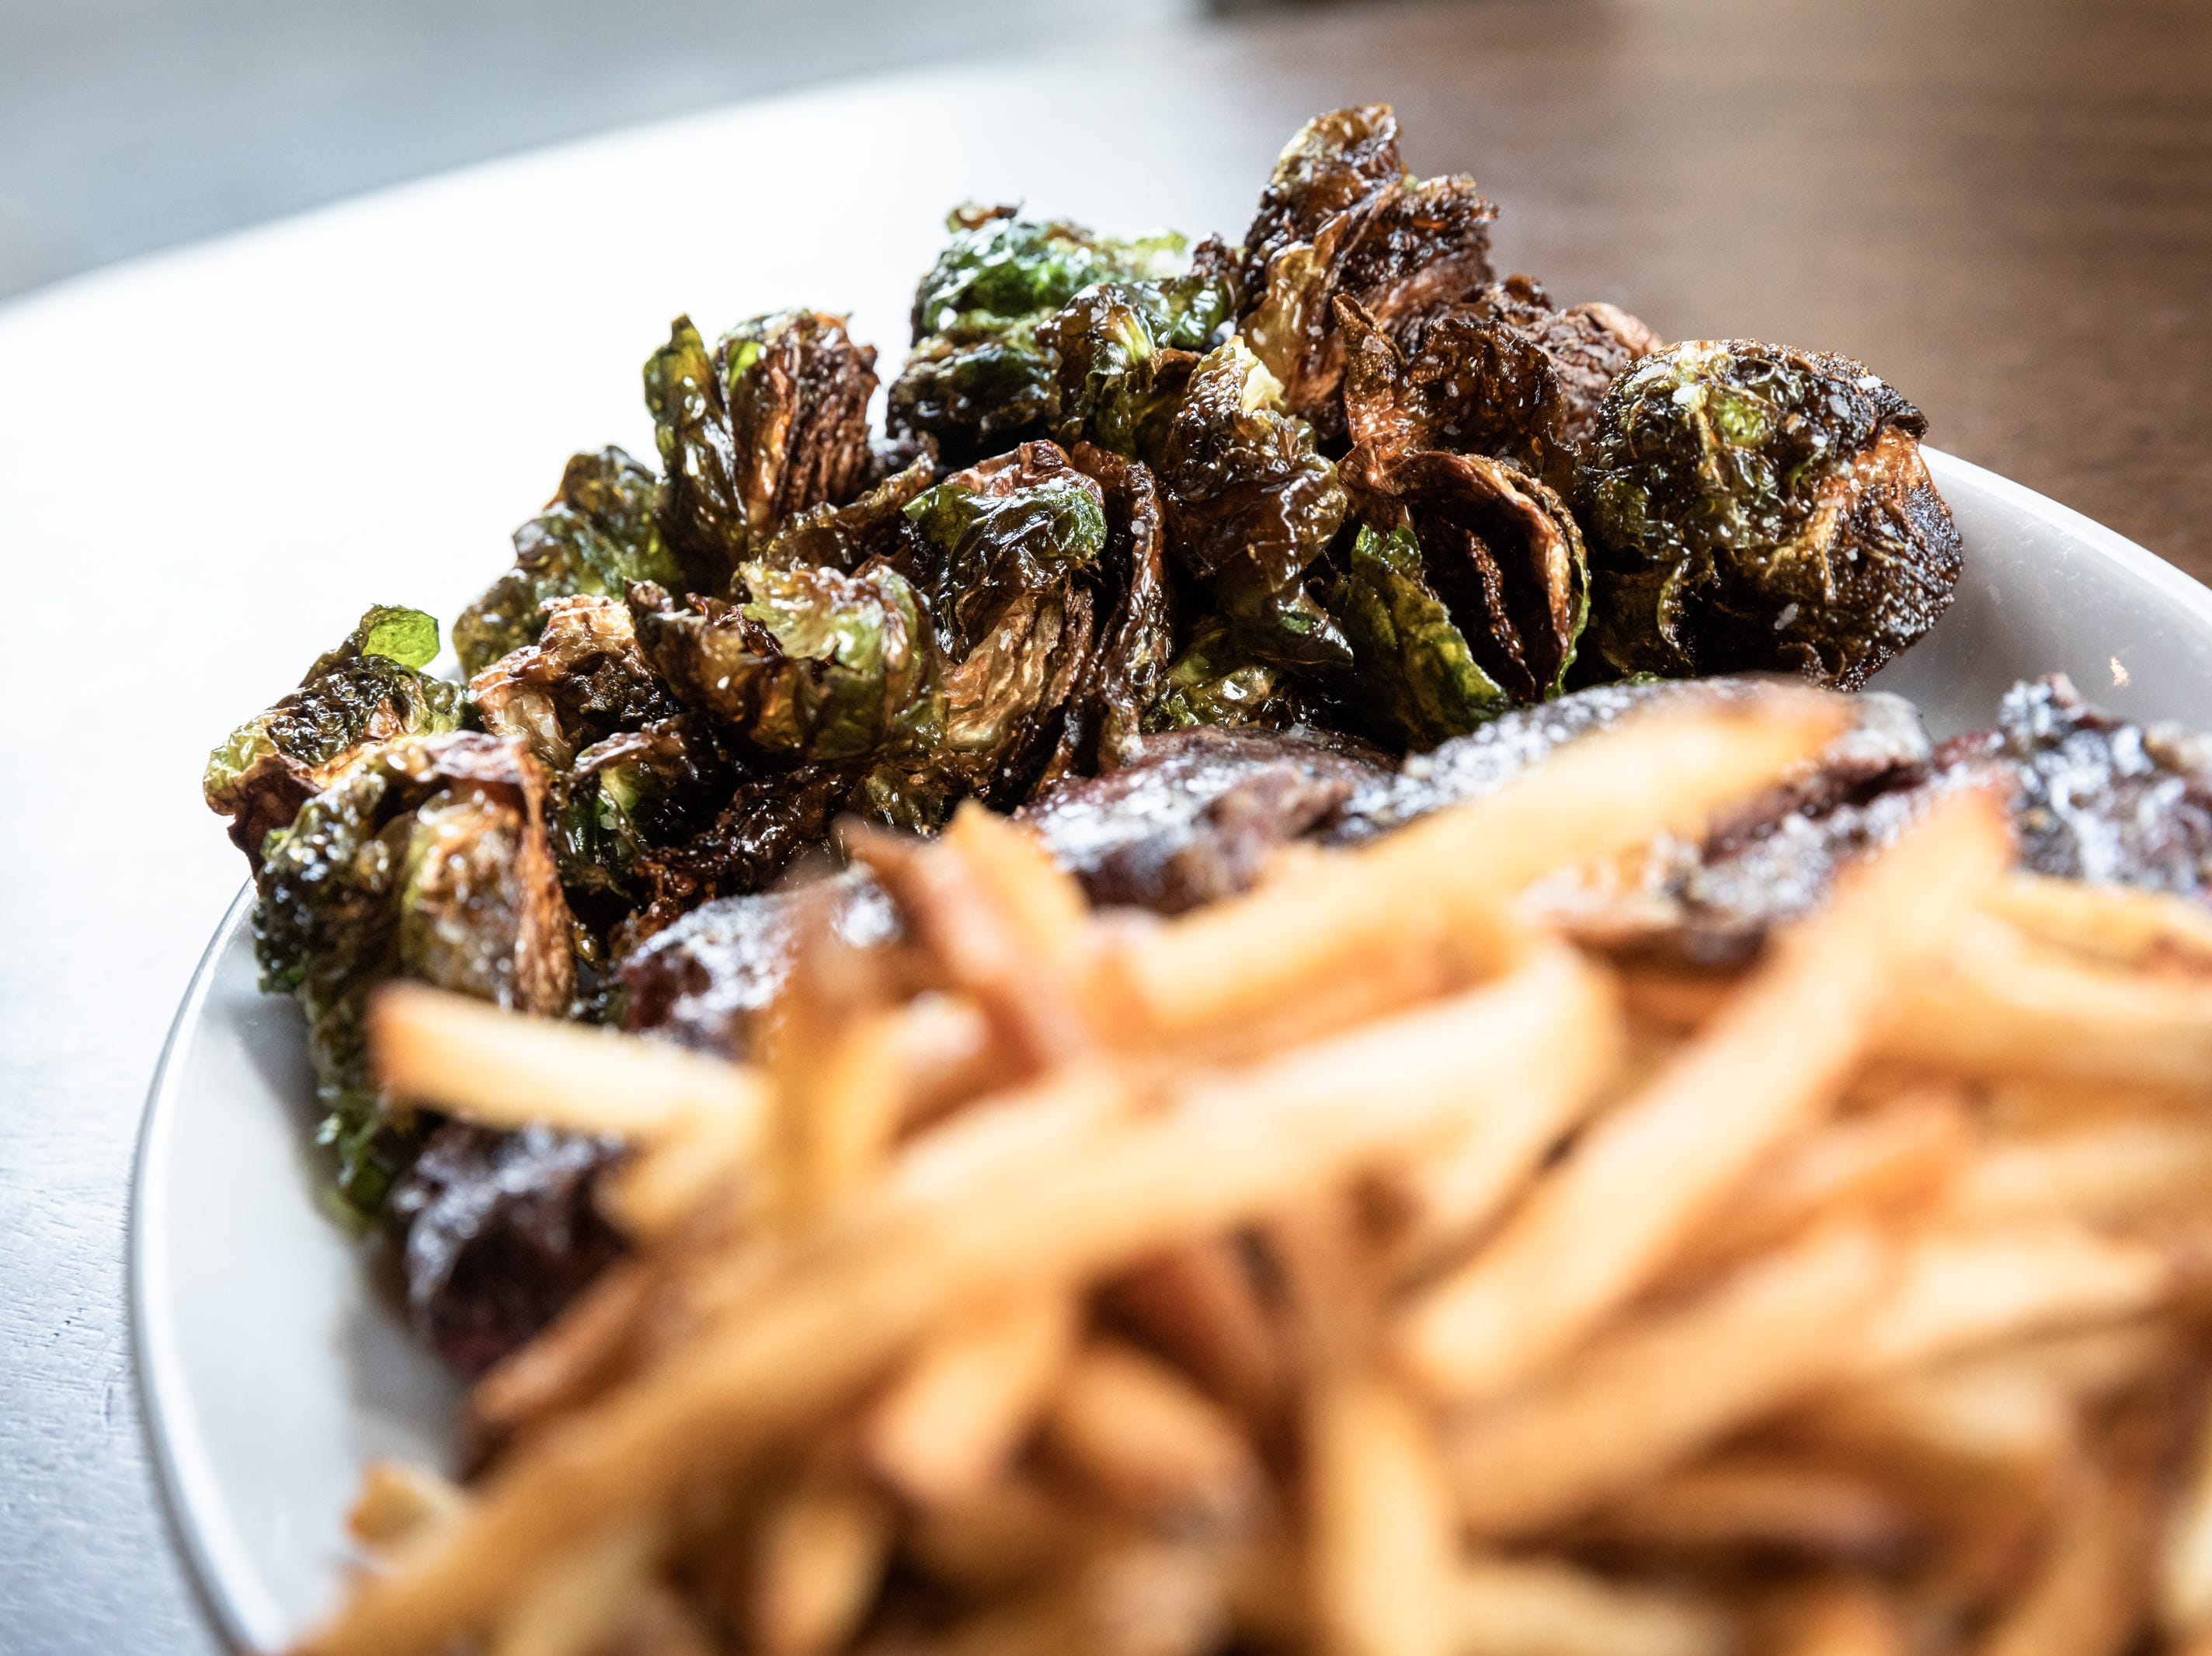 An 8 oz. Hereford Angus Dry-aged Denver steak from Apple Brandy Farms in Wilkesboro, with Brussels sprouts and frites, offered at Bone and Broth restaurant on Charlotte Street.